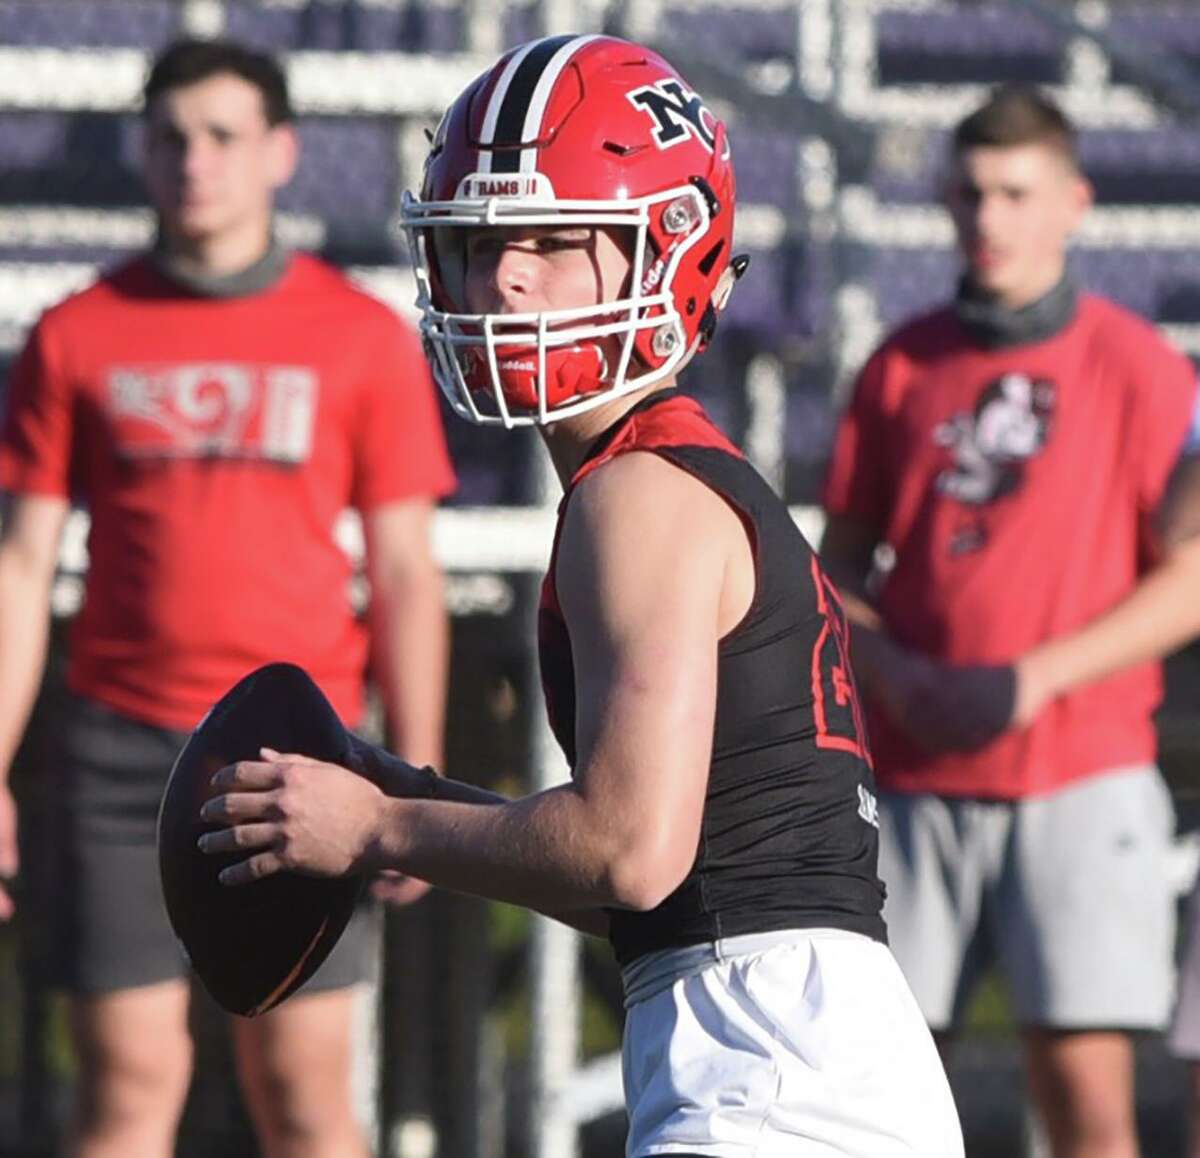 New Canaan quarterback Henry Cunney looks downfield during a 7-on-7 football game at Westhill High School on Friday, Oct. 9, 2020.